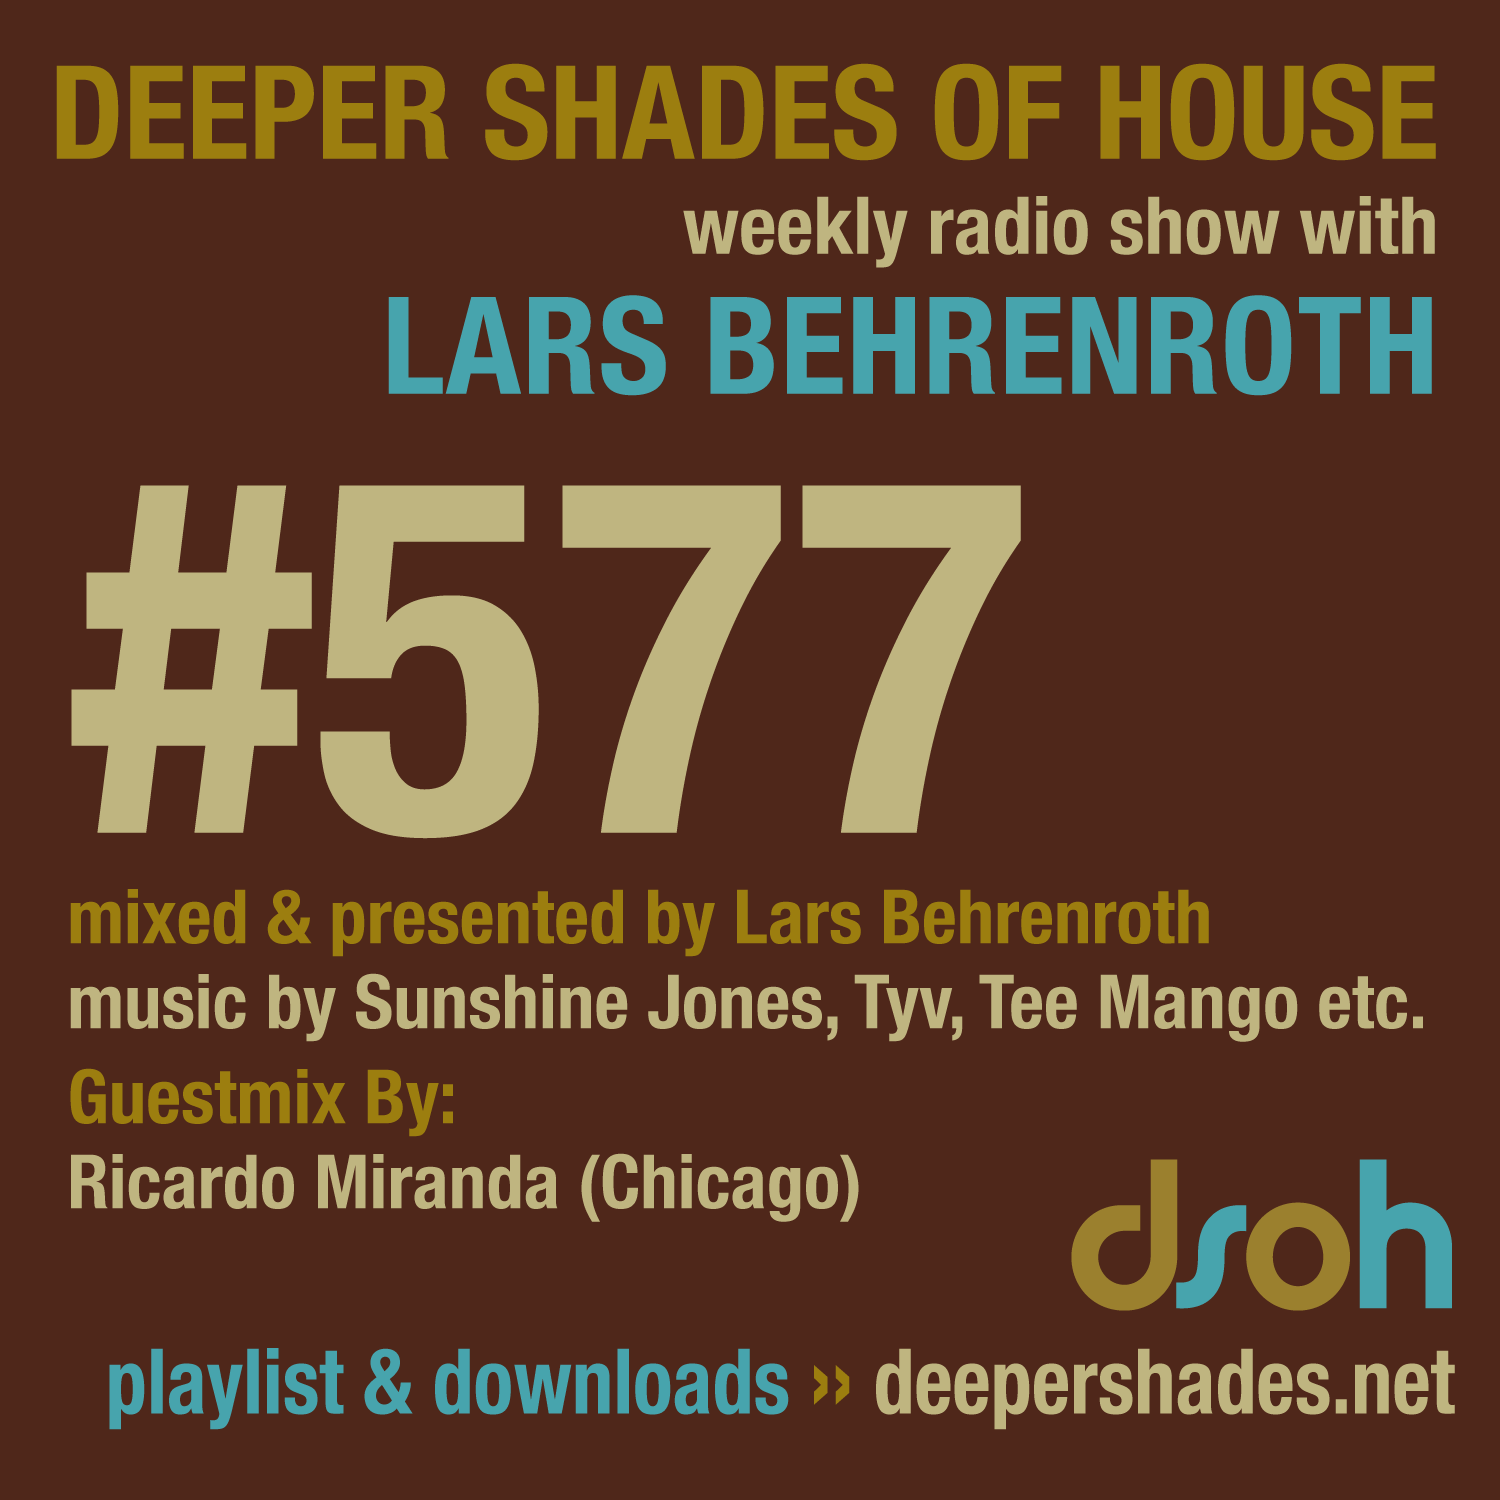 Deeper Shades Of House 577